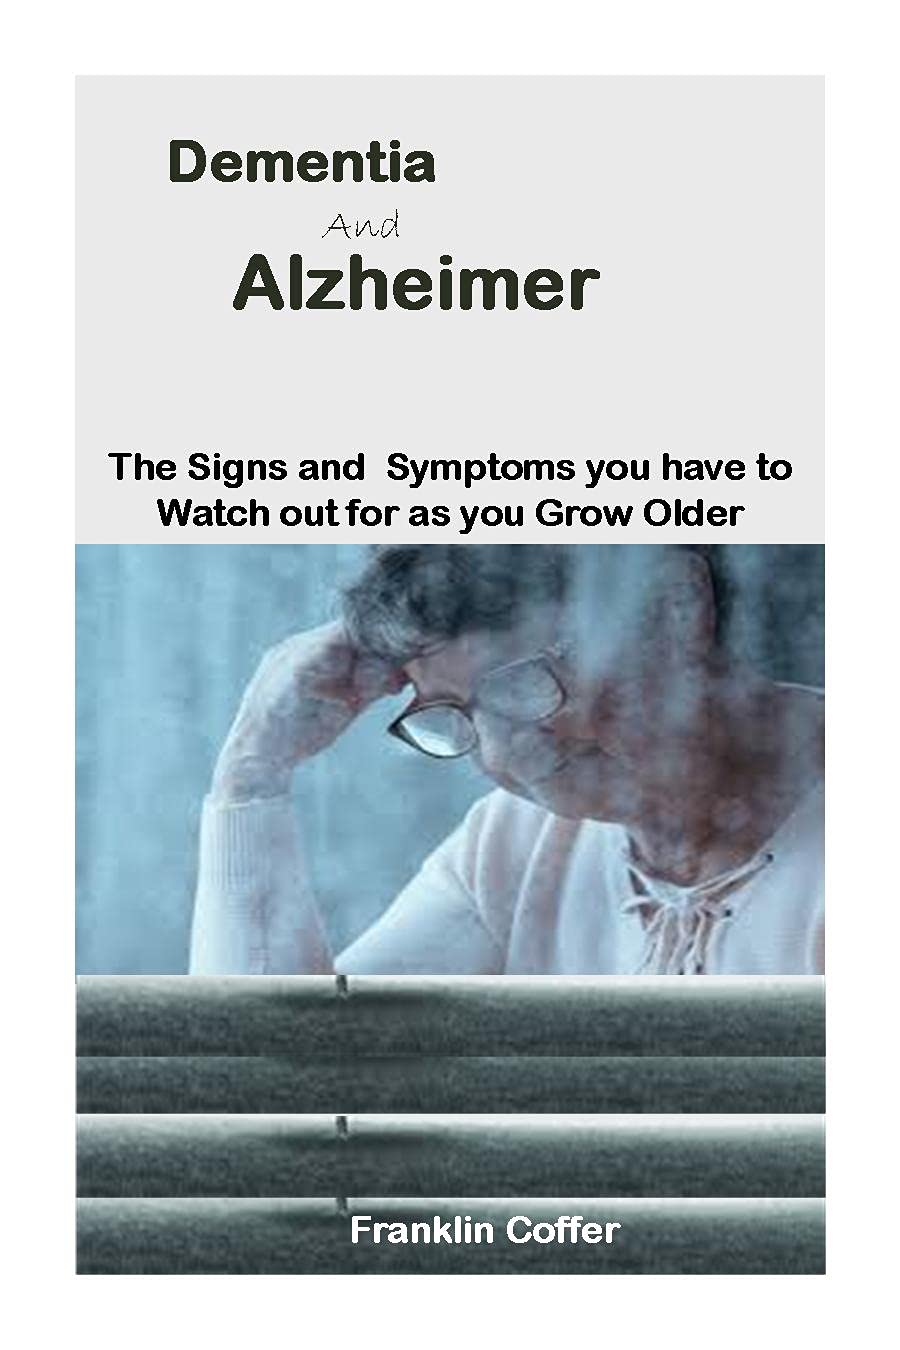 Dementia and Alzheimer: The Signs And Symptoms You Have To Watch Out For As You Grow Older